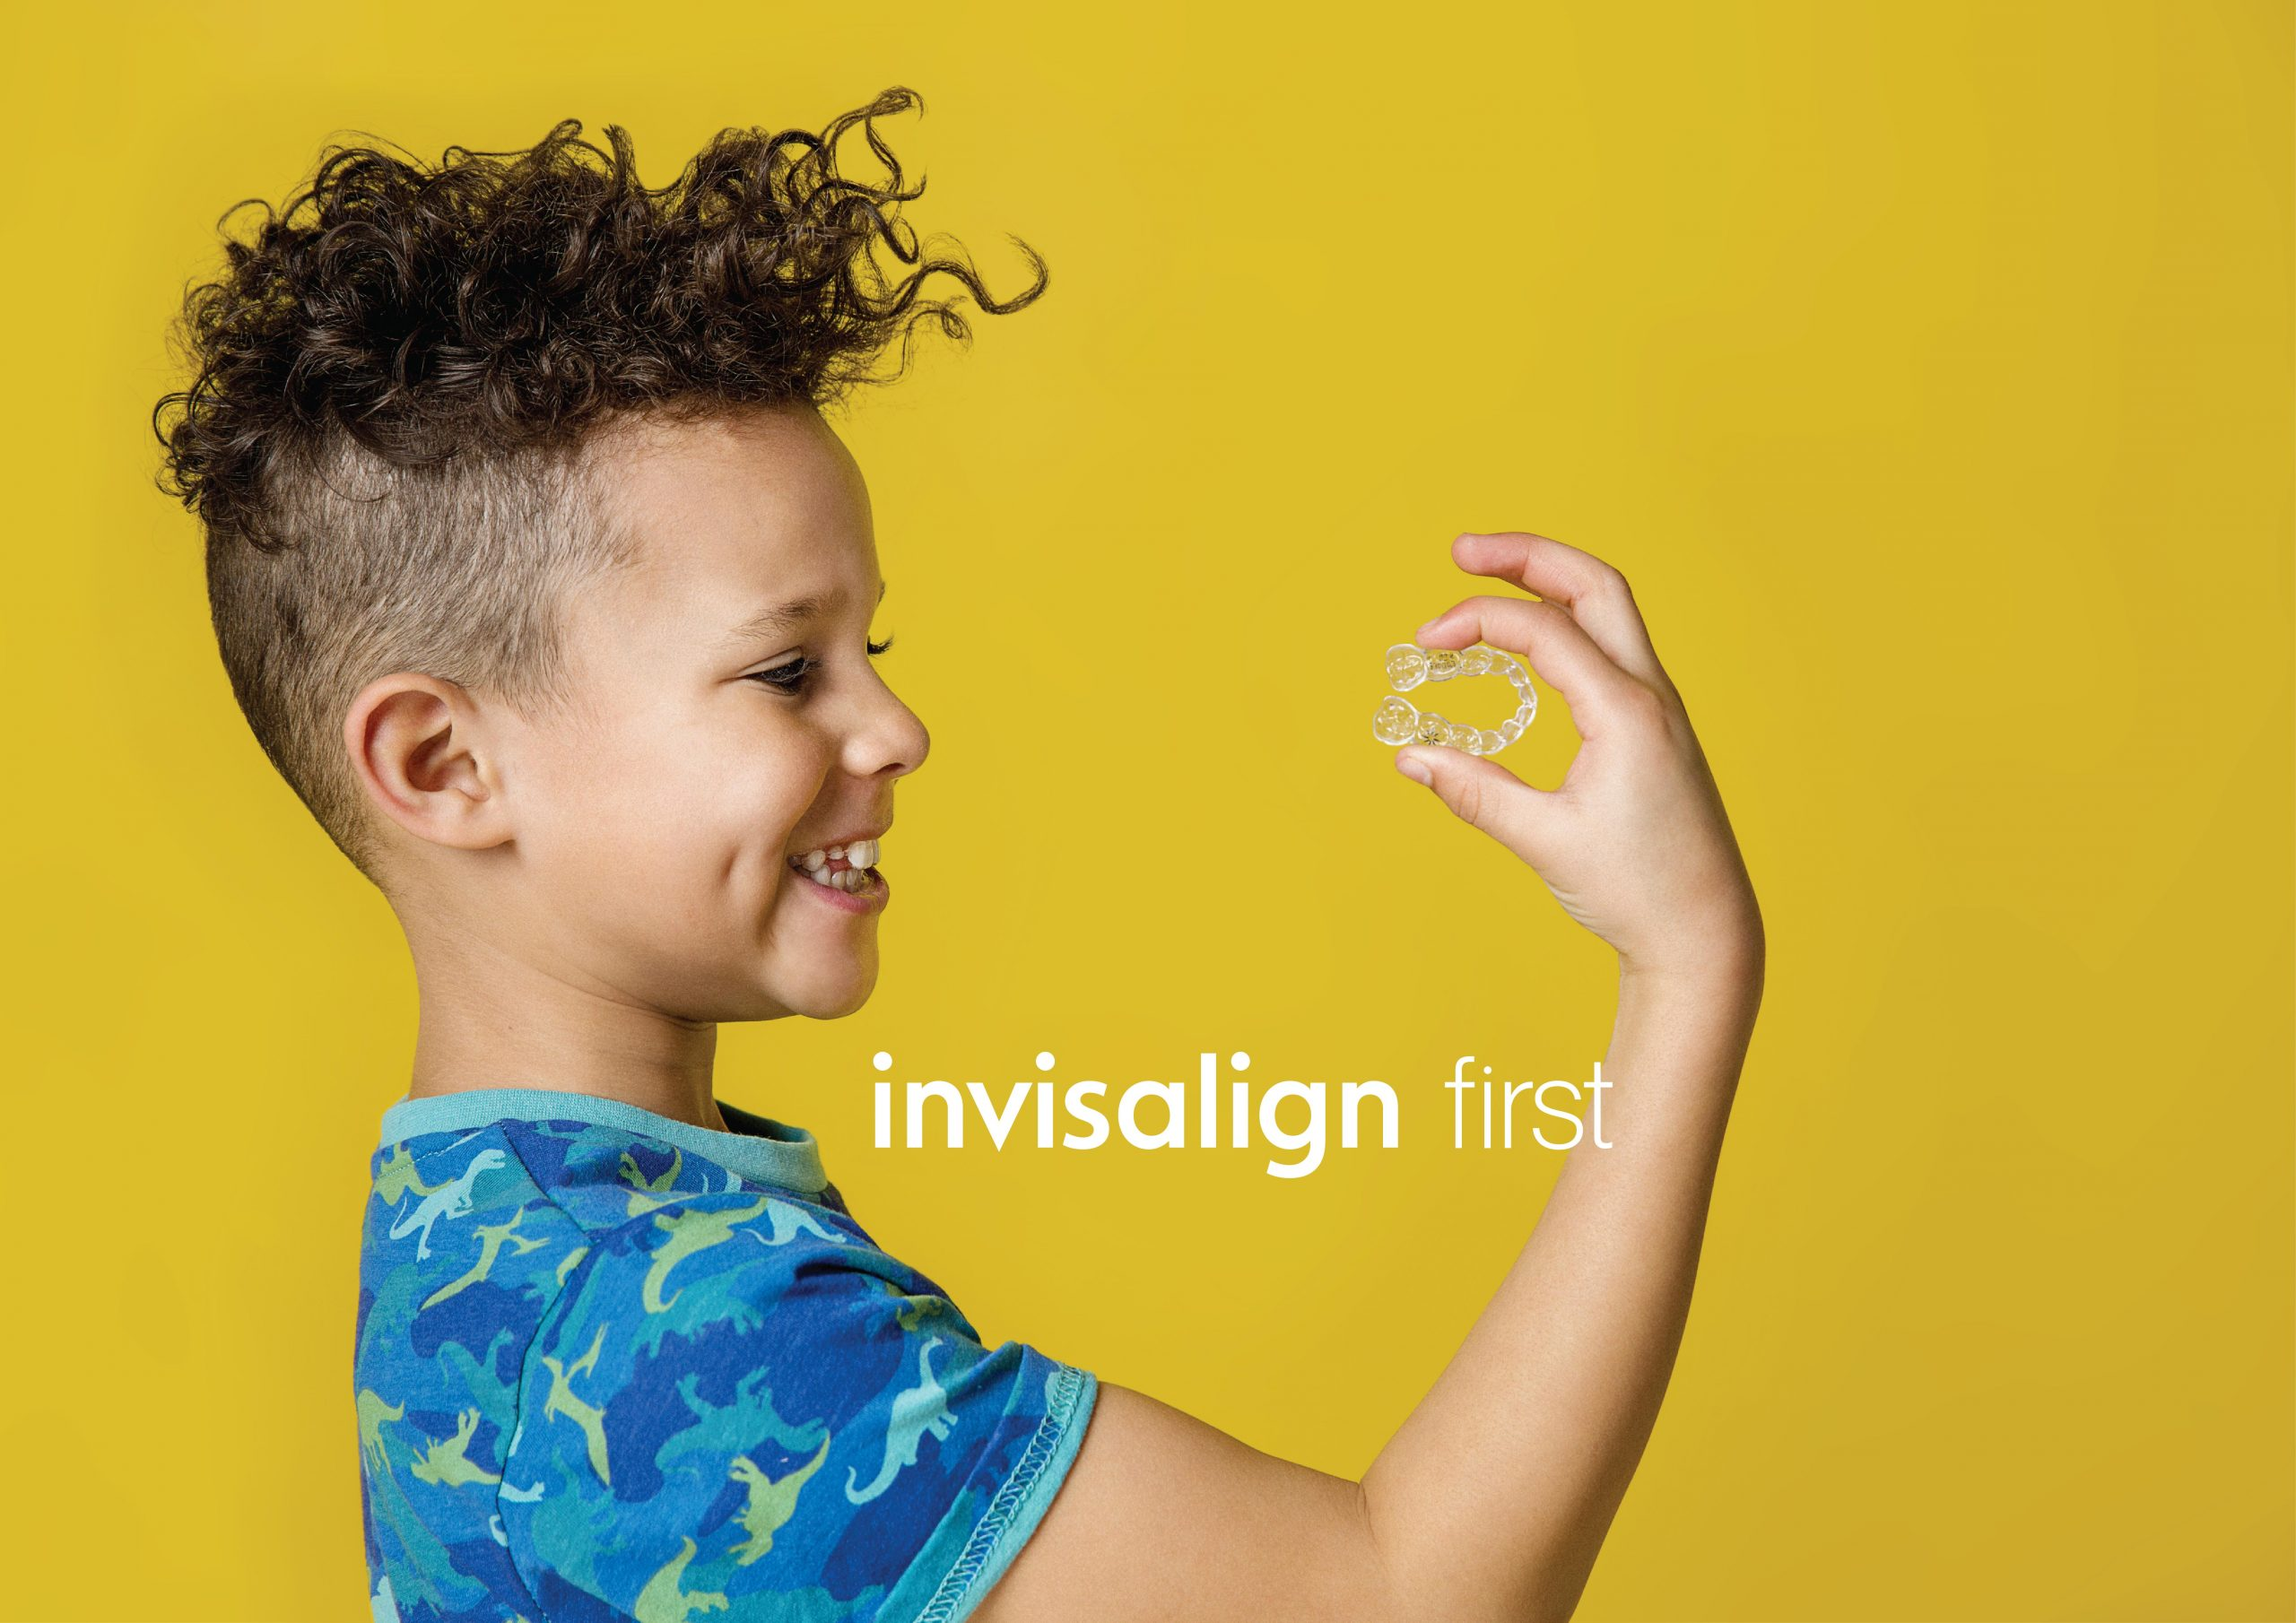 invisalign-first-kid-visual